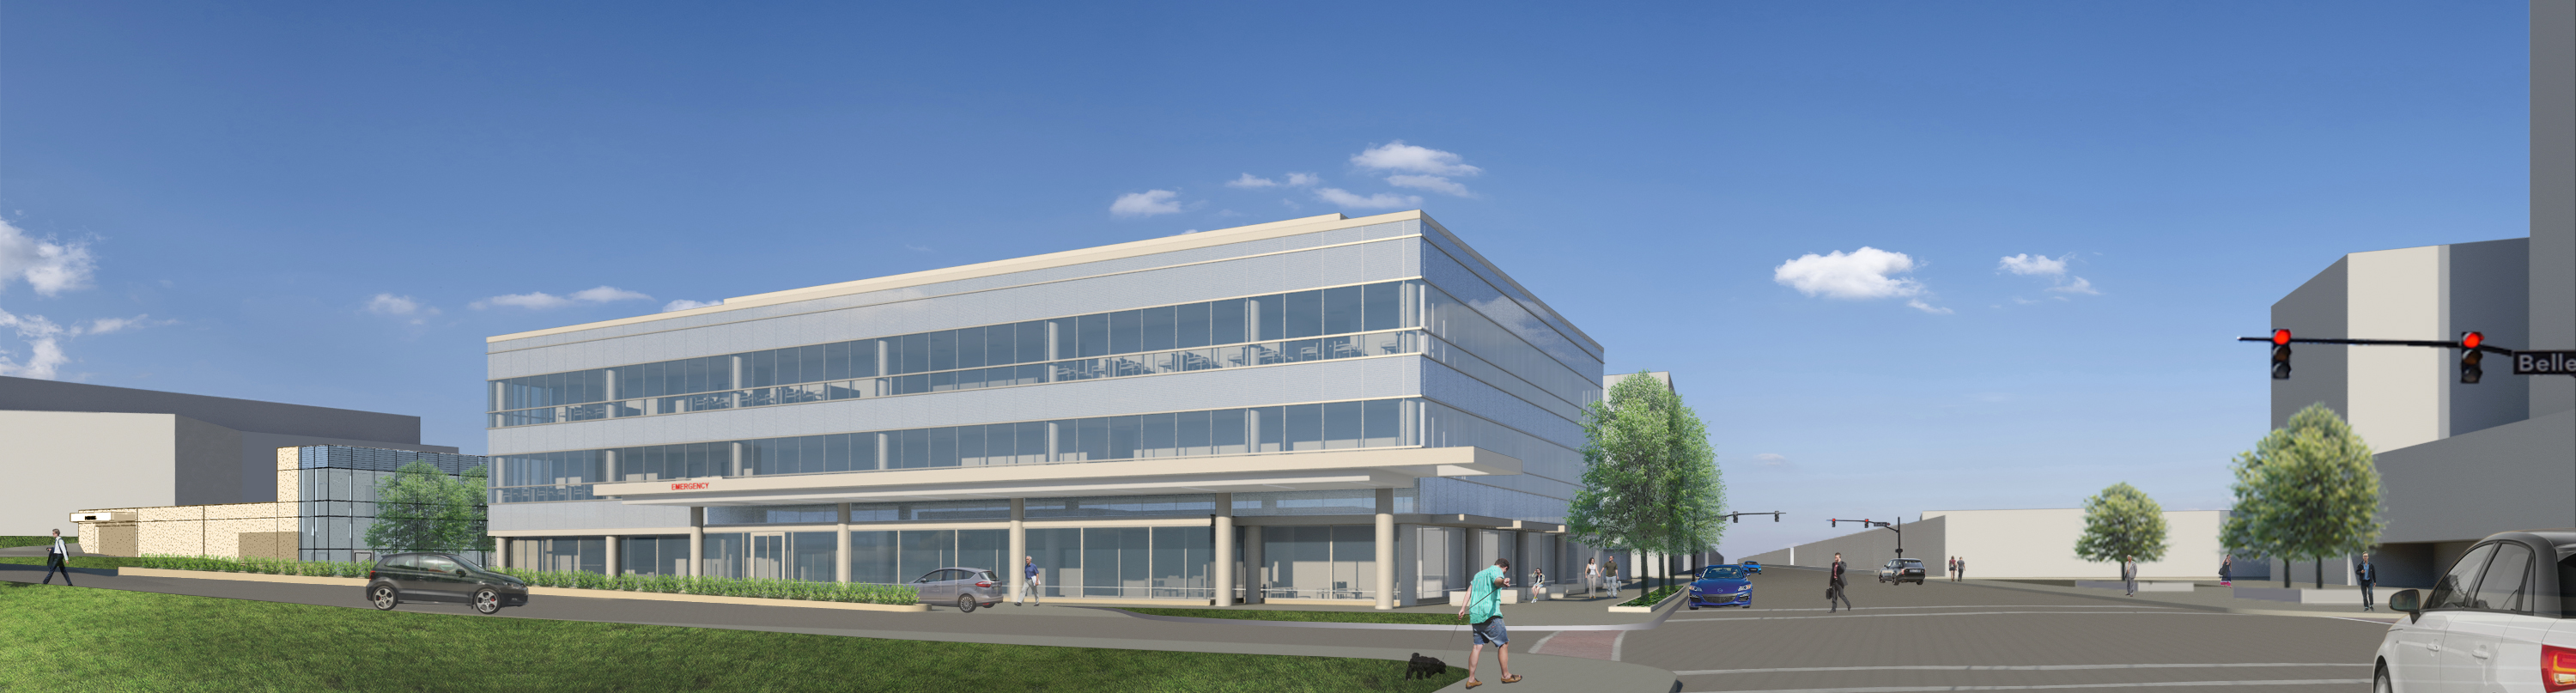 Cleveland Clinic Lakewood Family Health Center Rendering